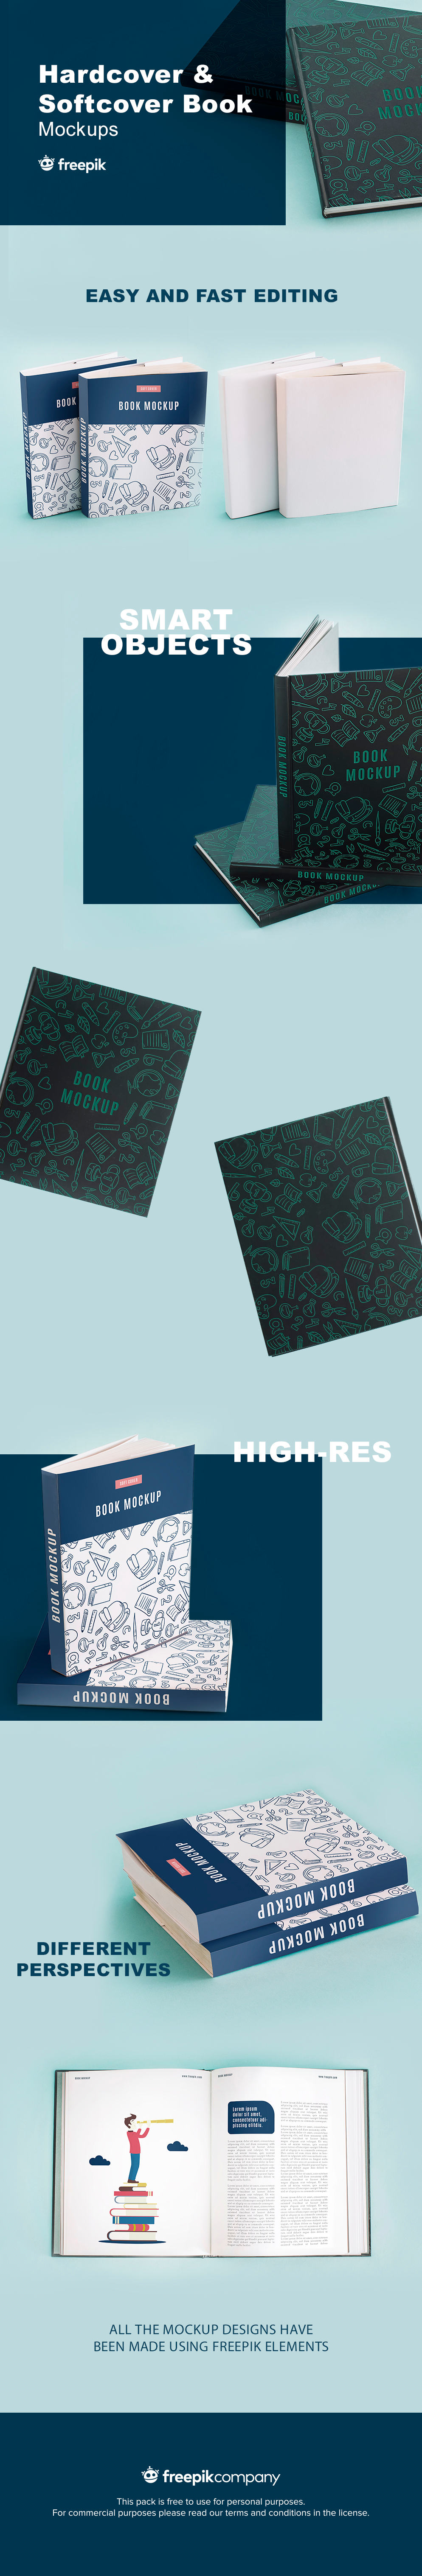 Free Hardcover and Softcover Book Mockup Set